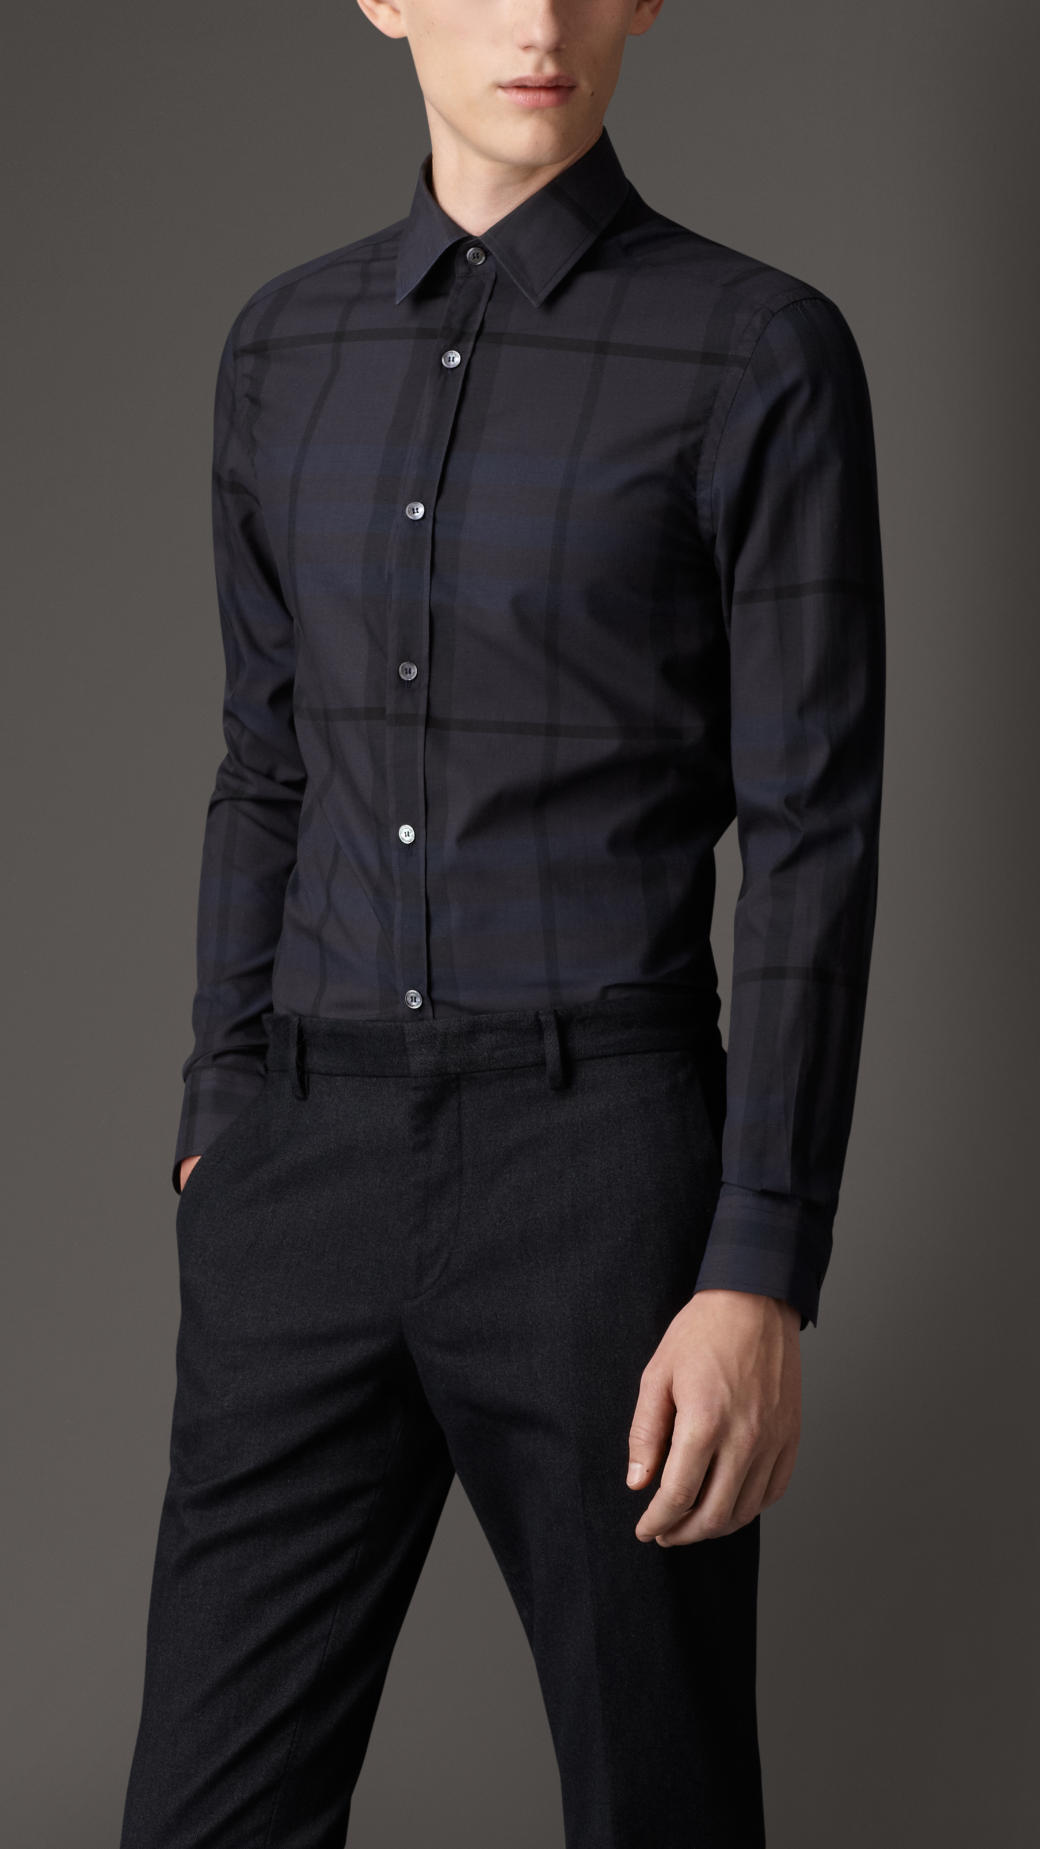 Lyst - Burberry Tailored Fit Beat Check Shirt in Blue for Men